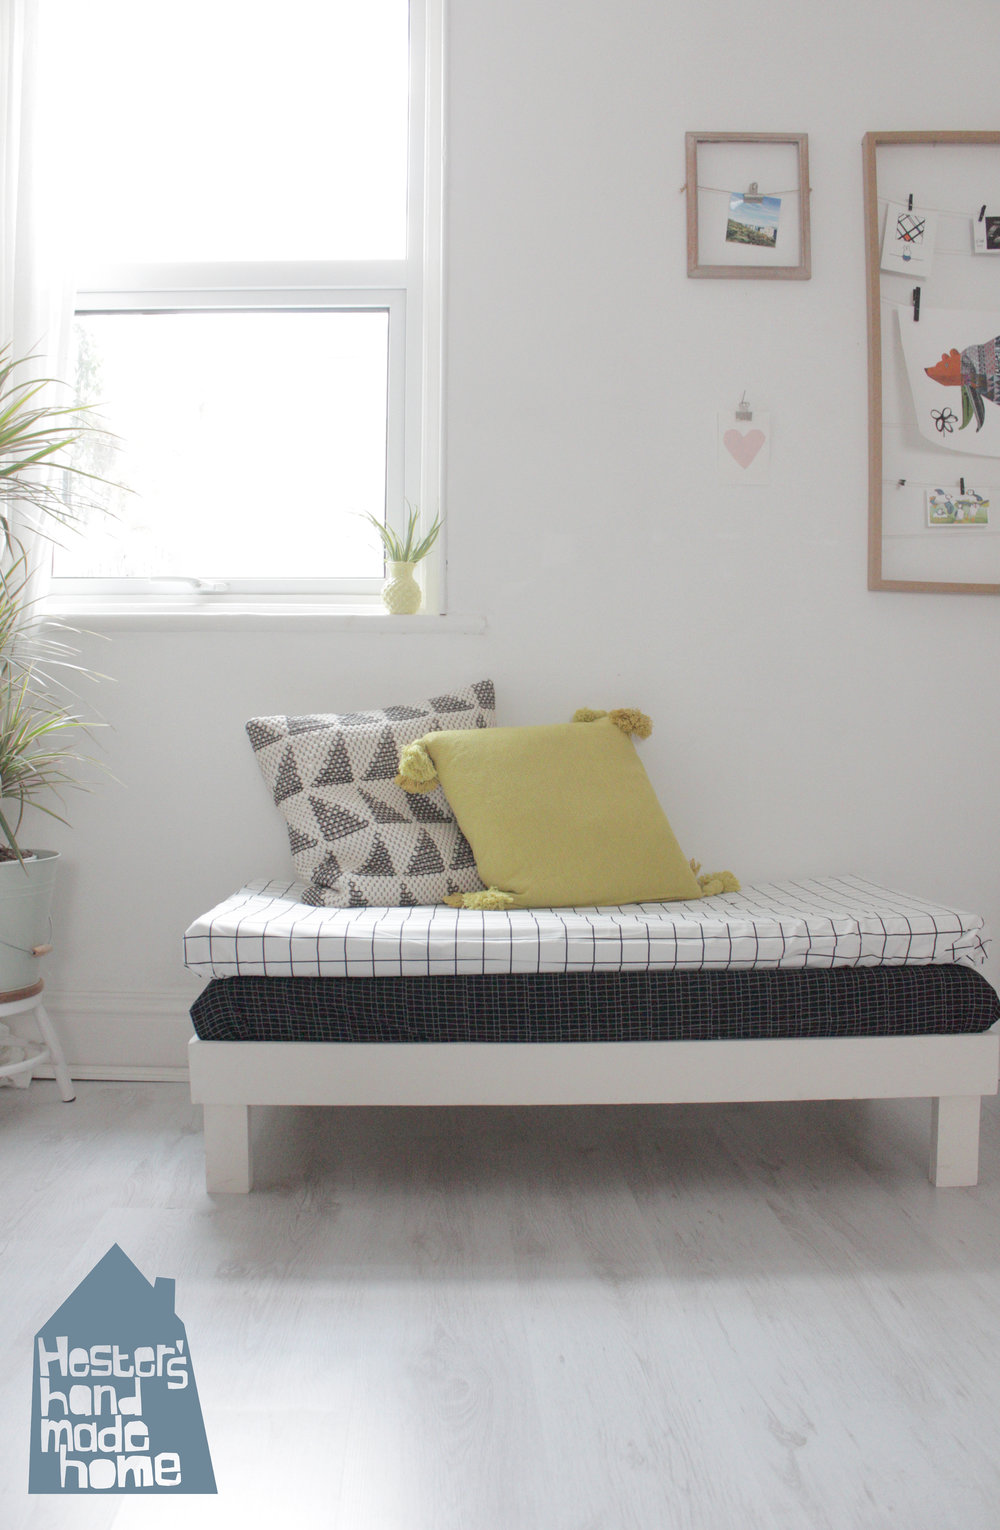 Small day bed made from cot mattresses by Hesters handmade Home.jpg